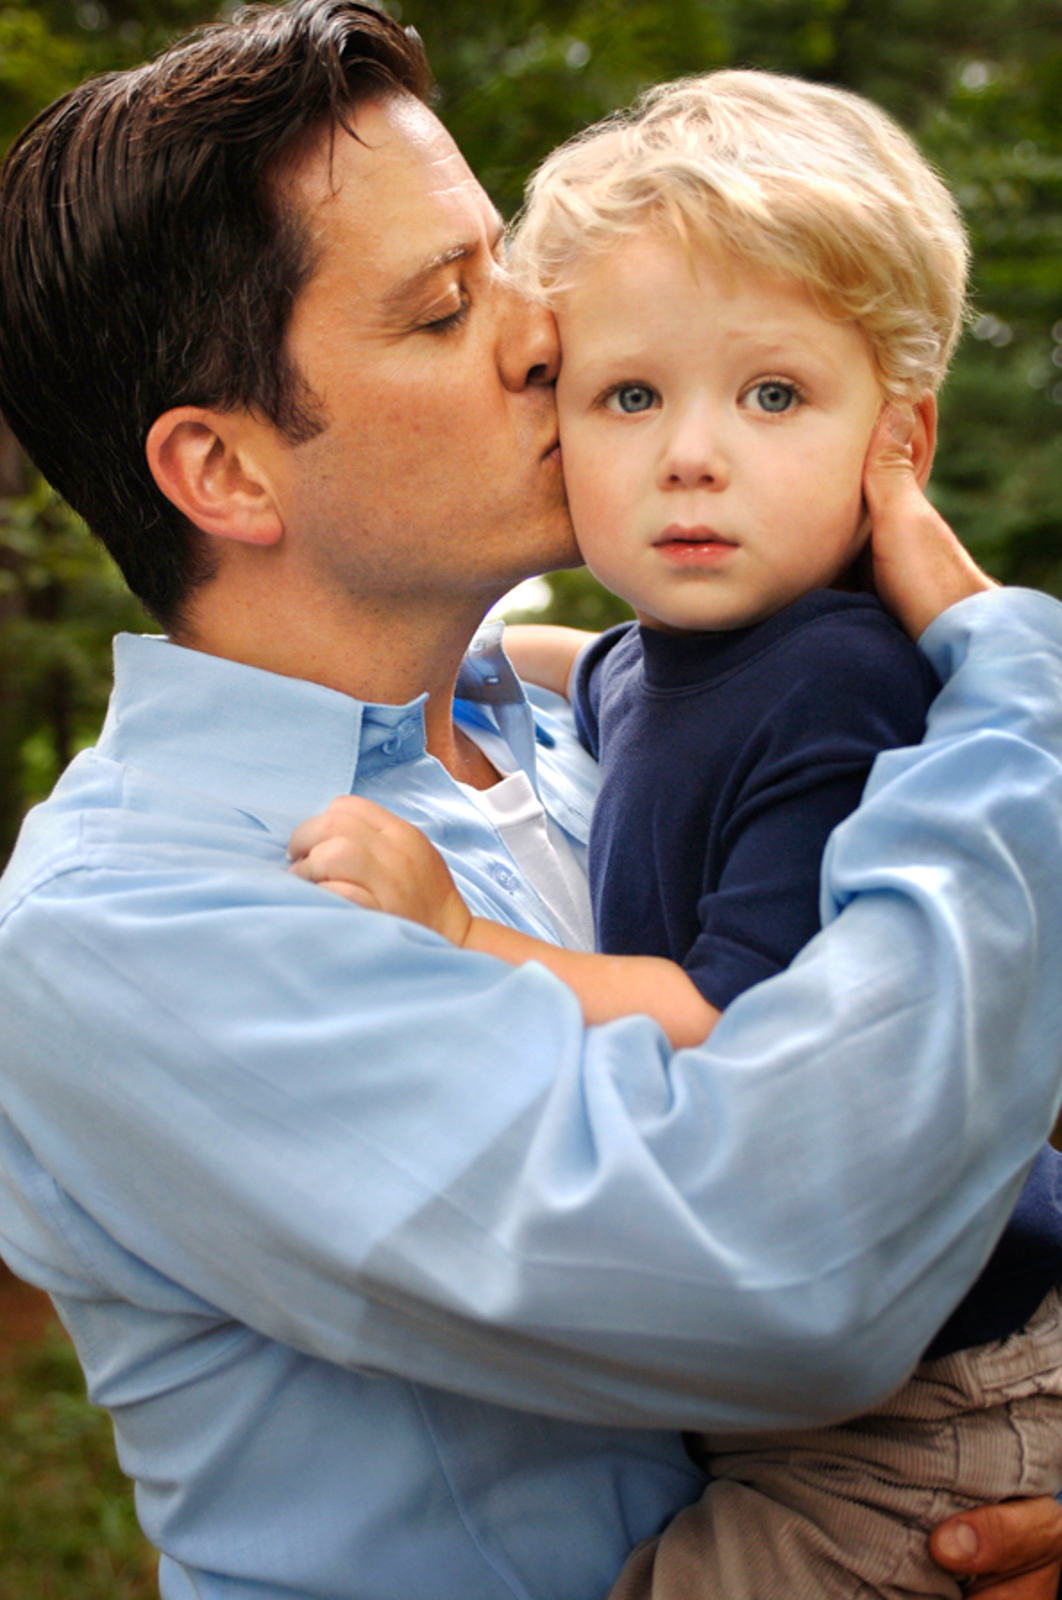 Portrait of man holding a small child, lovingly